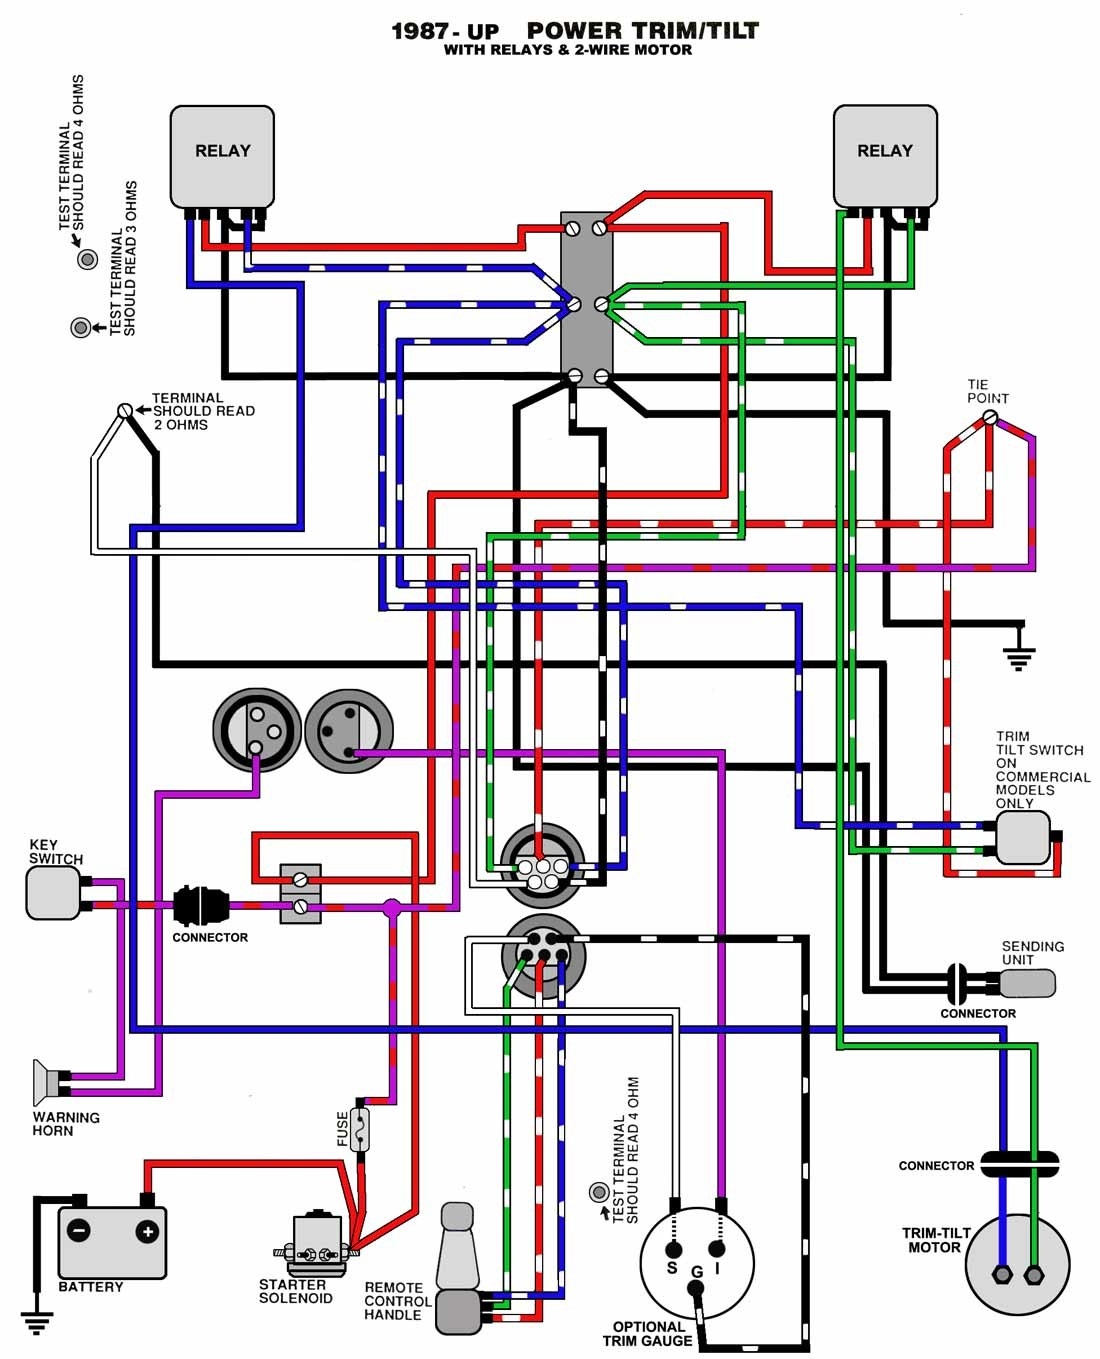 1990 Evinrude 70 Hp Wiring Diagram